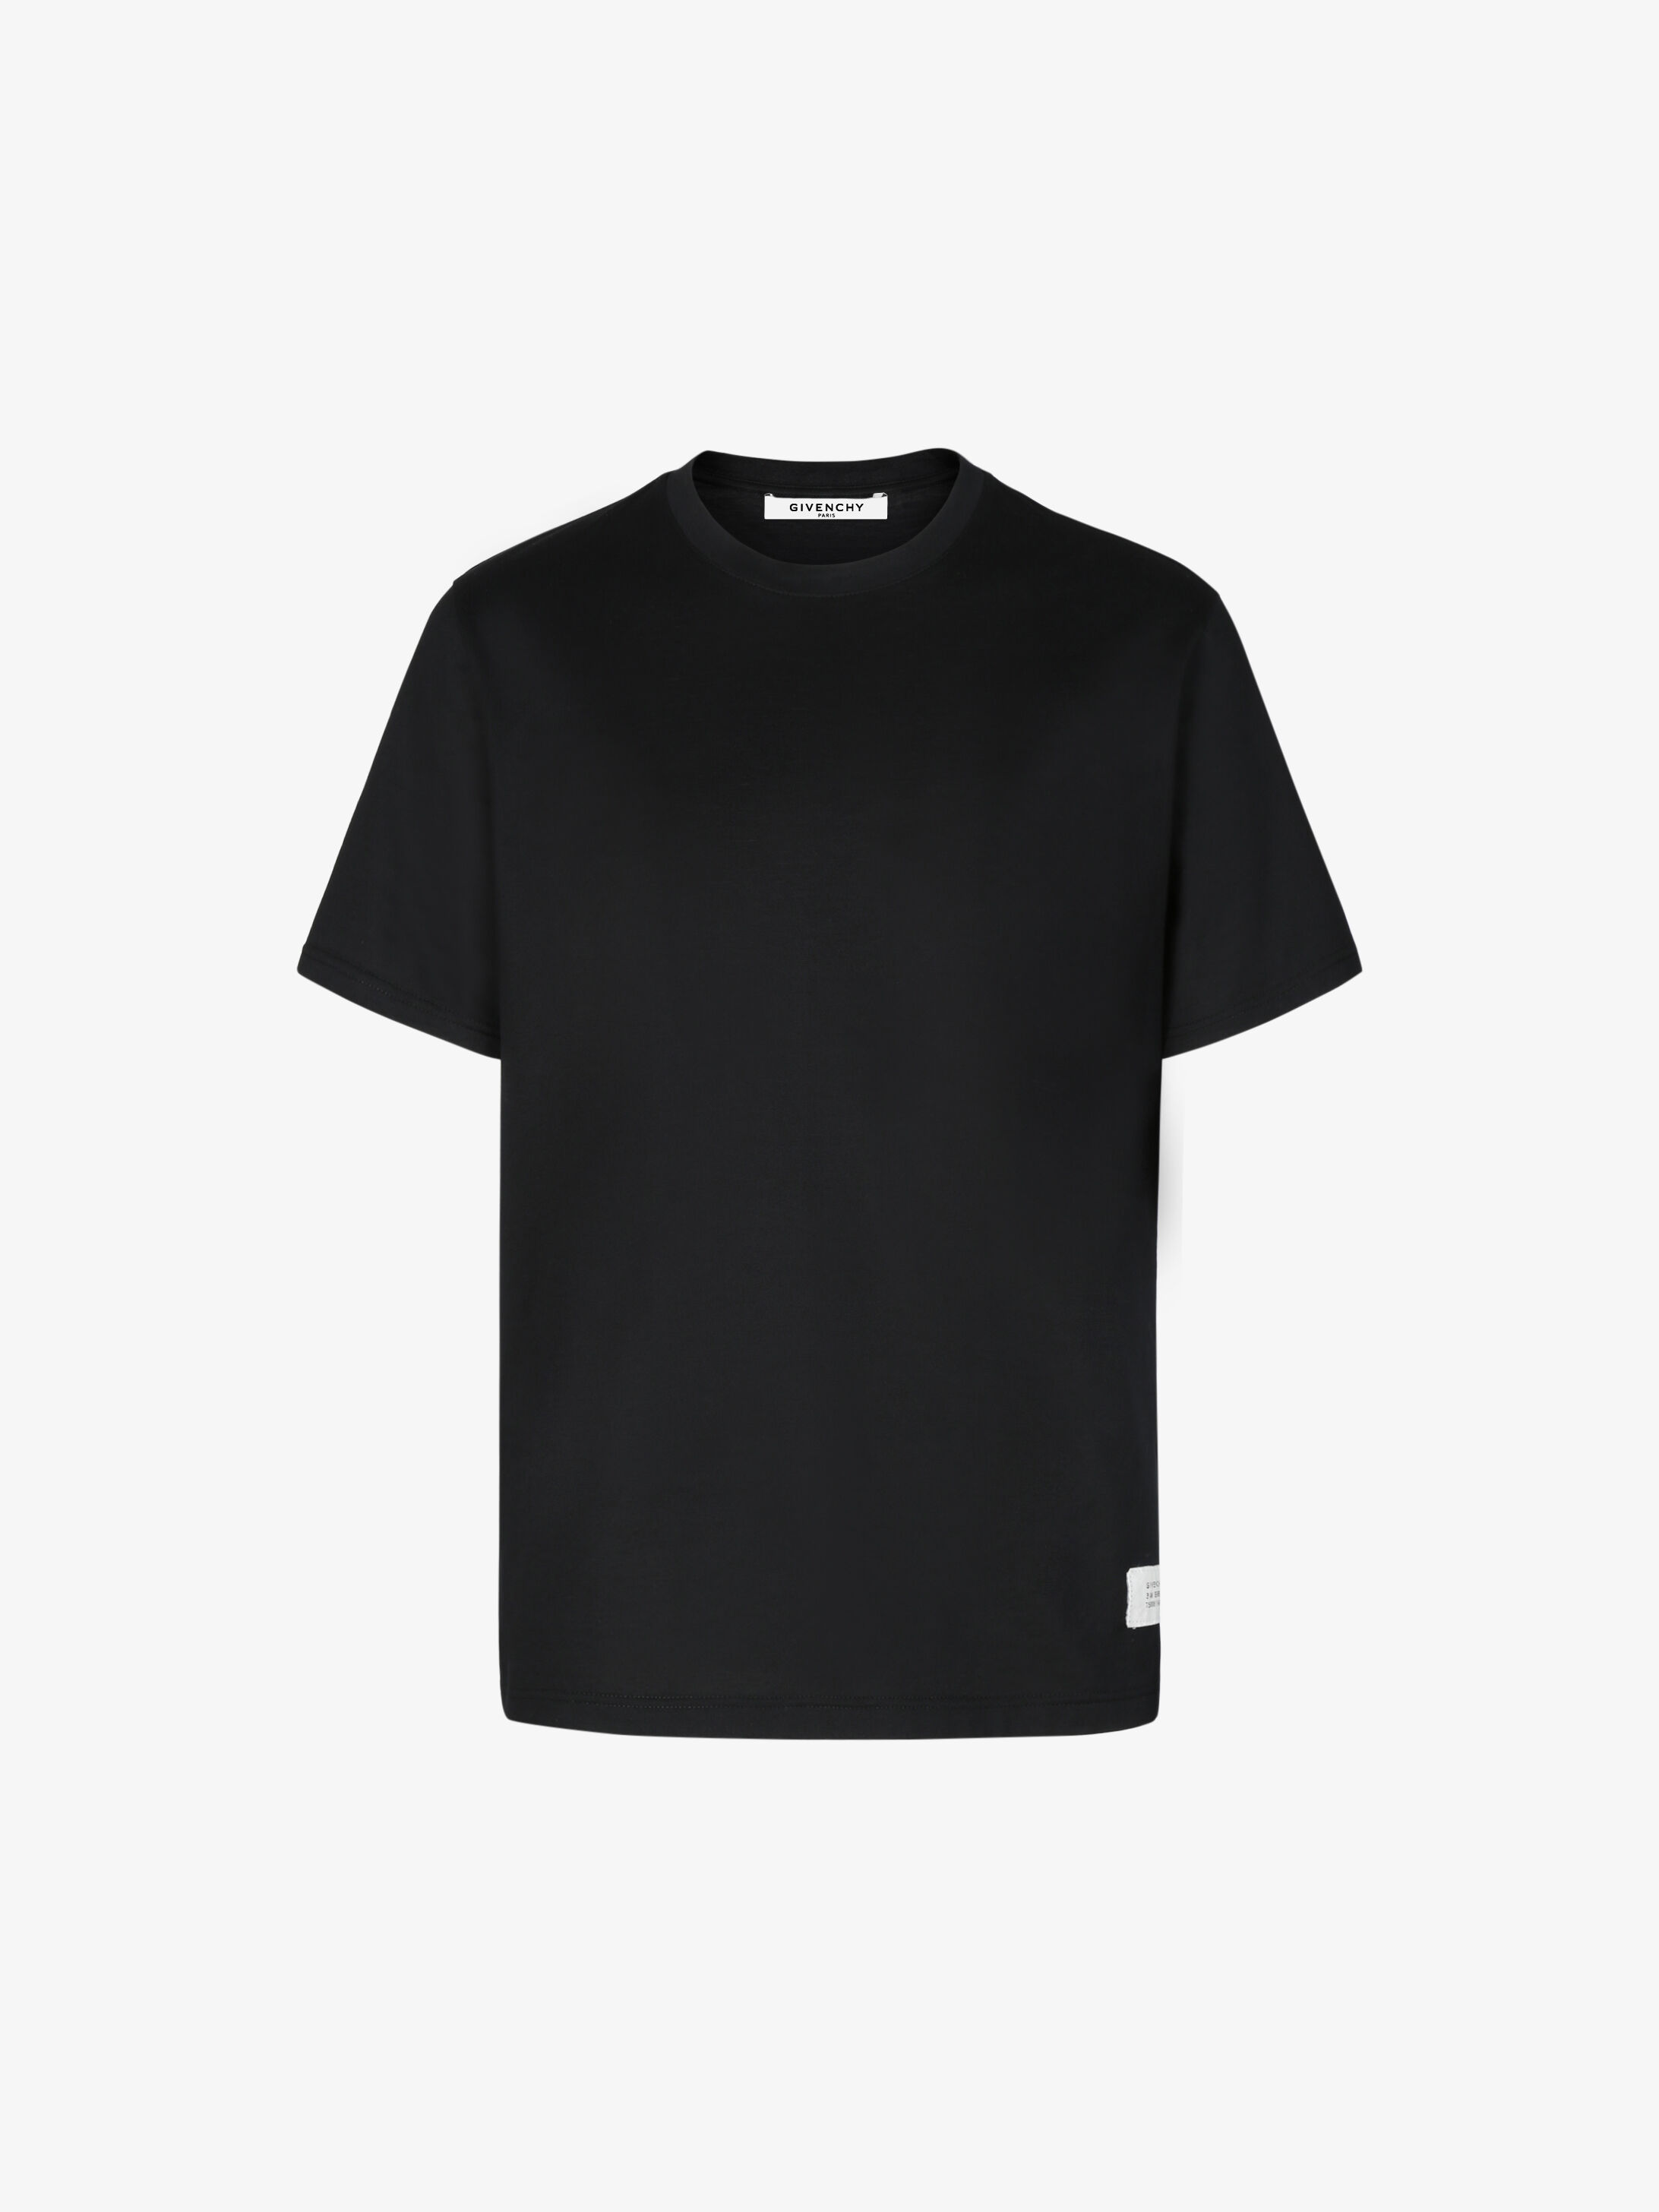 8e733a6a Men's T-Shirts collection by Givenchy. | GIVENCHY Paris